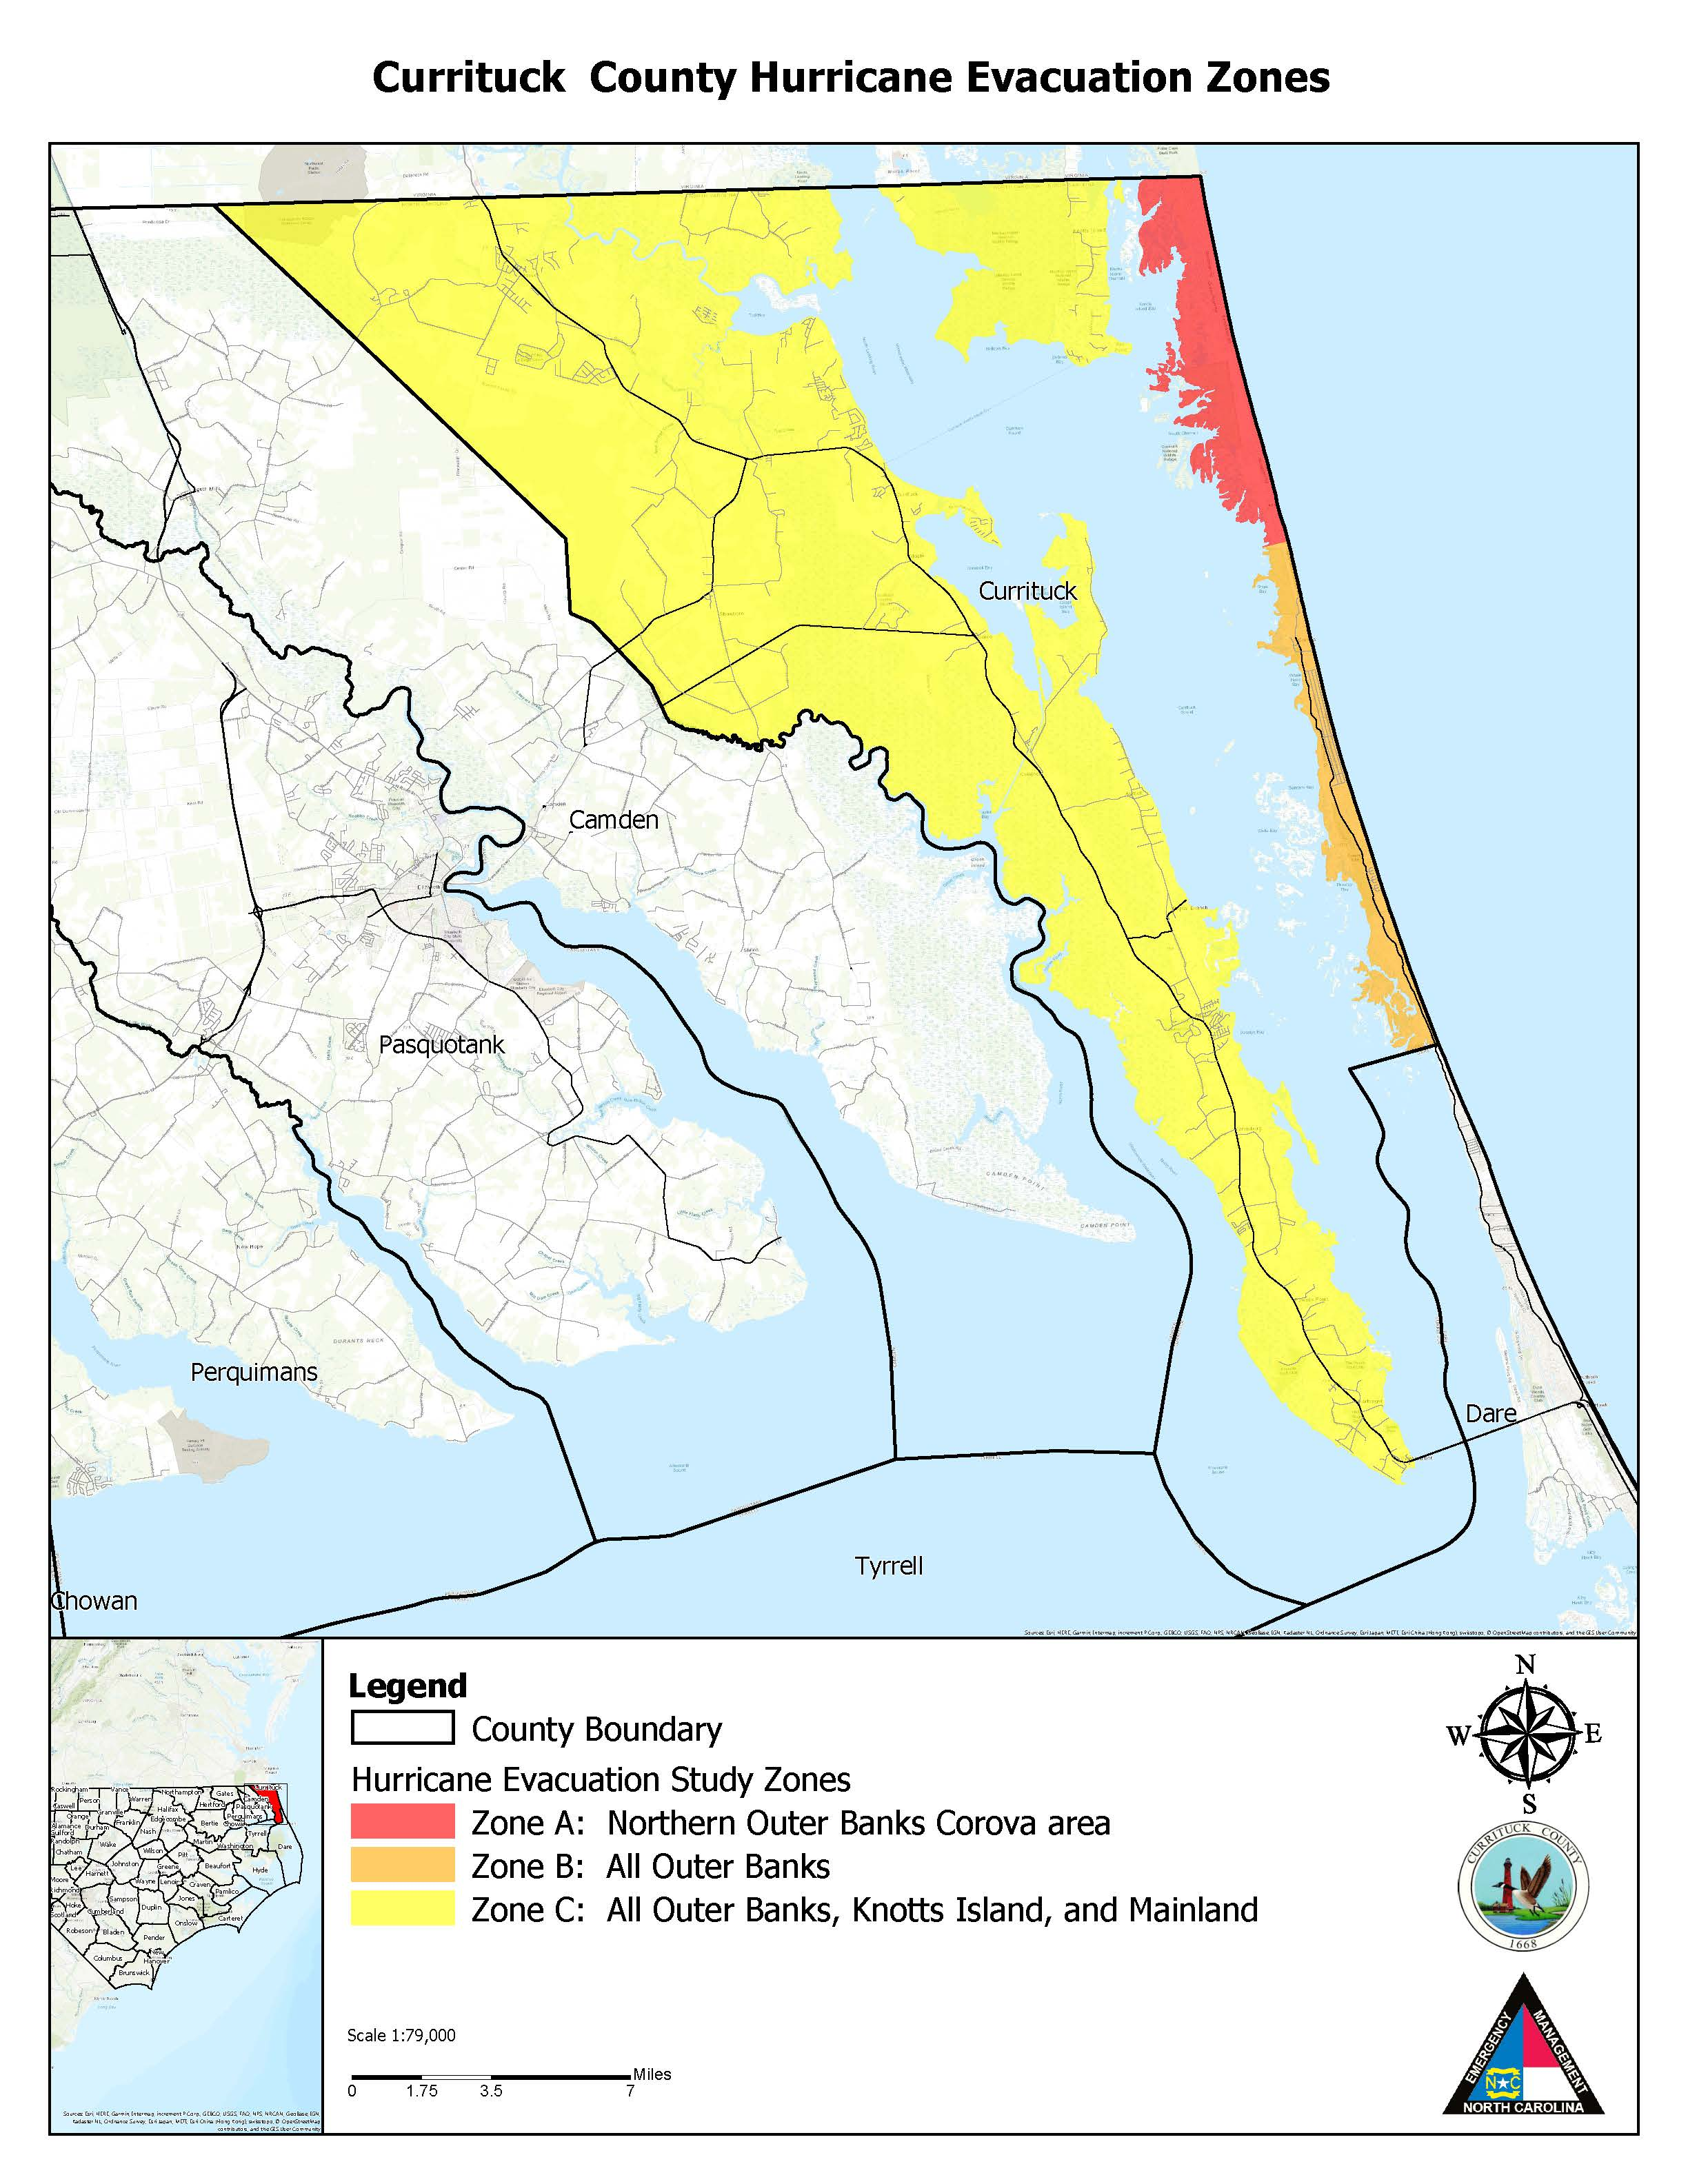 Currituck County Evacuation Zone map